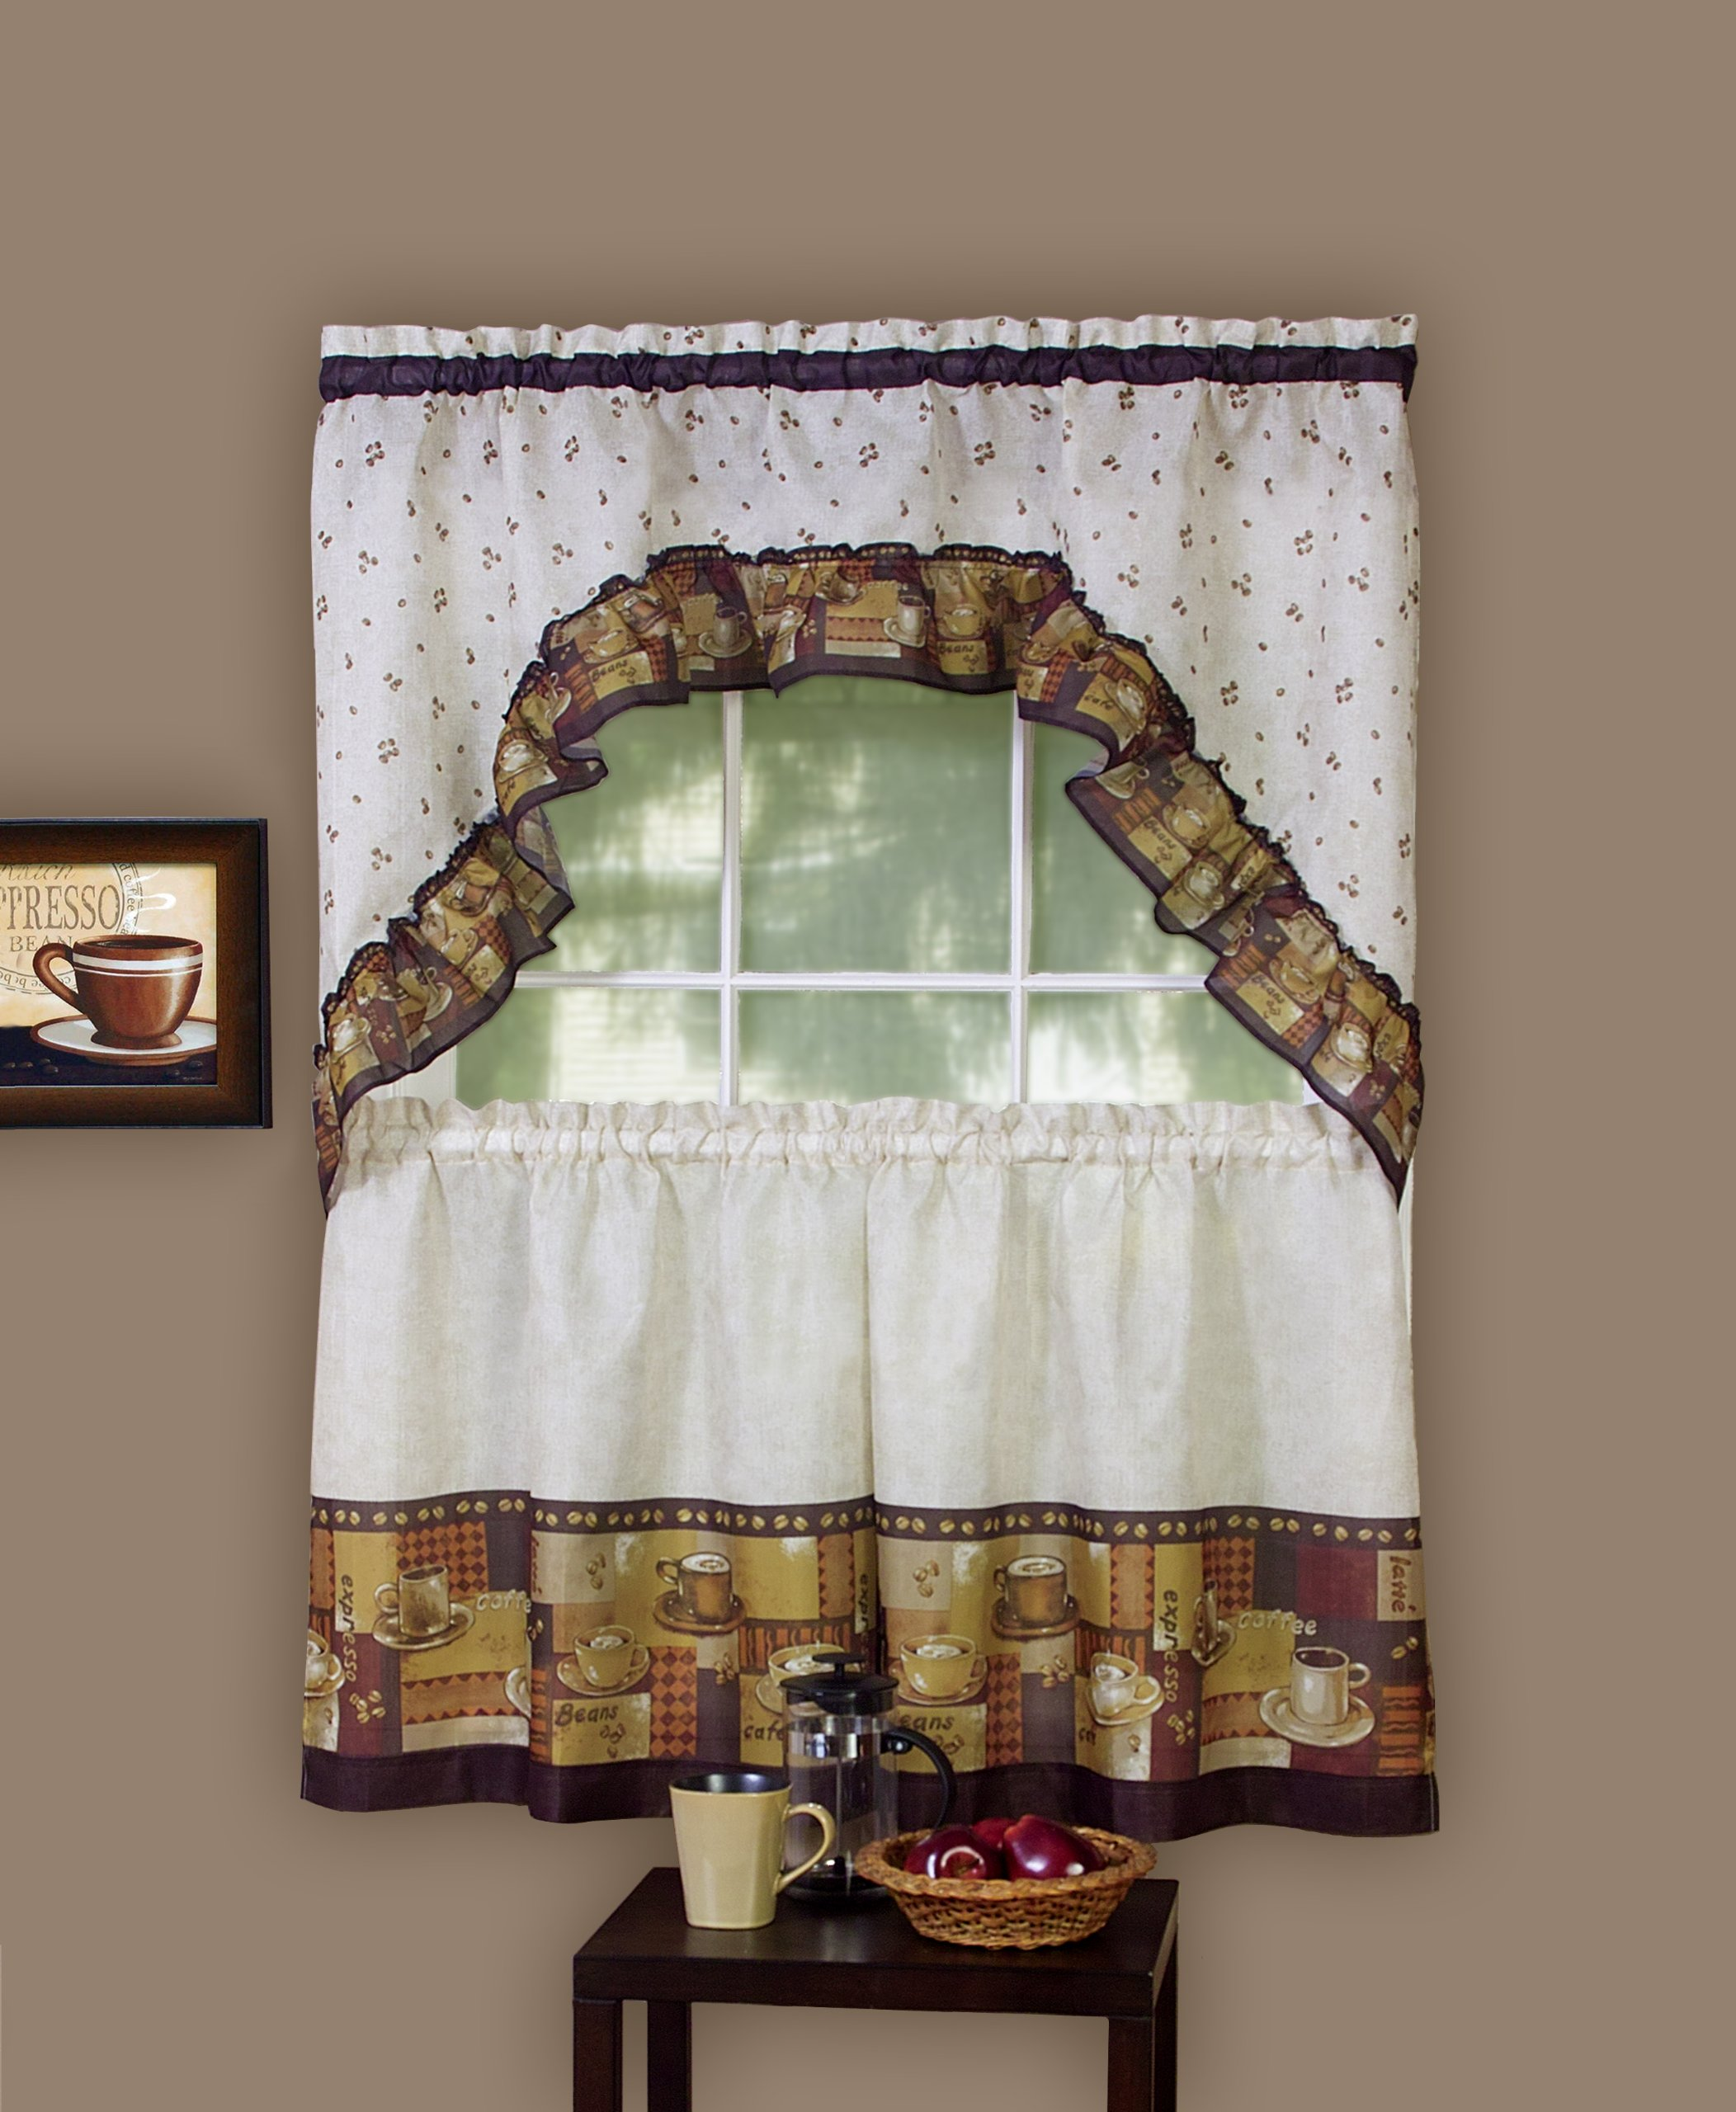 Coffee Kitchen Curtains Amazon Com: 3 Pcs Kitchen Curtain Coffee Tier And Swag Valance Complete Window Treatment Set 689816121552